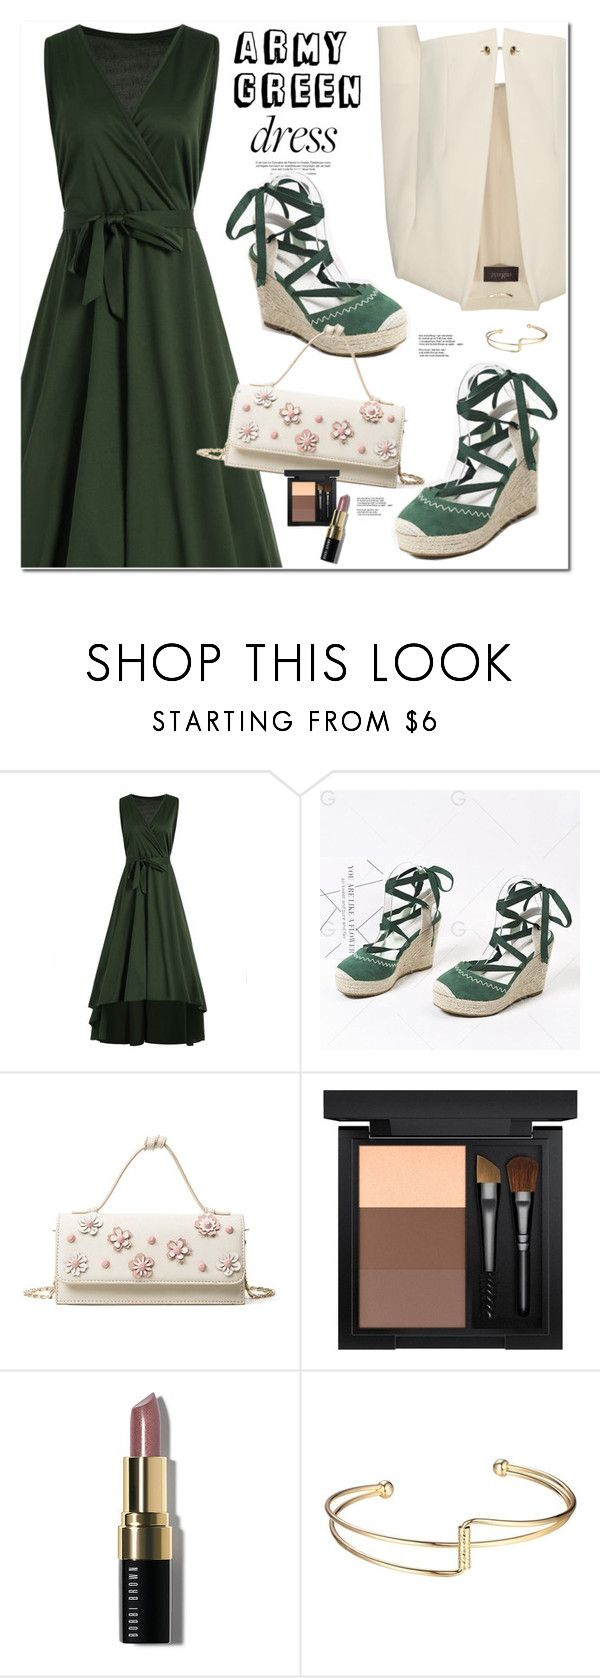 """Army green Dress"" by oshint ❤ liked on Polyvore featuring MAC Cosmetics, Bobbi Brown Cosmetics, awesome, pretty, beautiful, dress and gamiss"